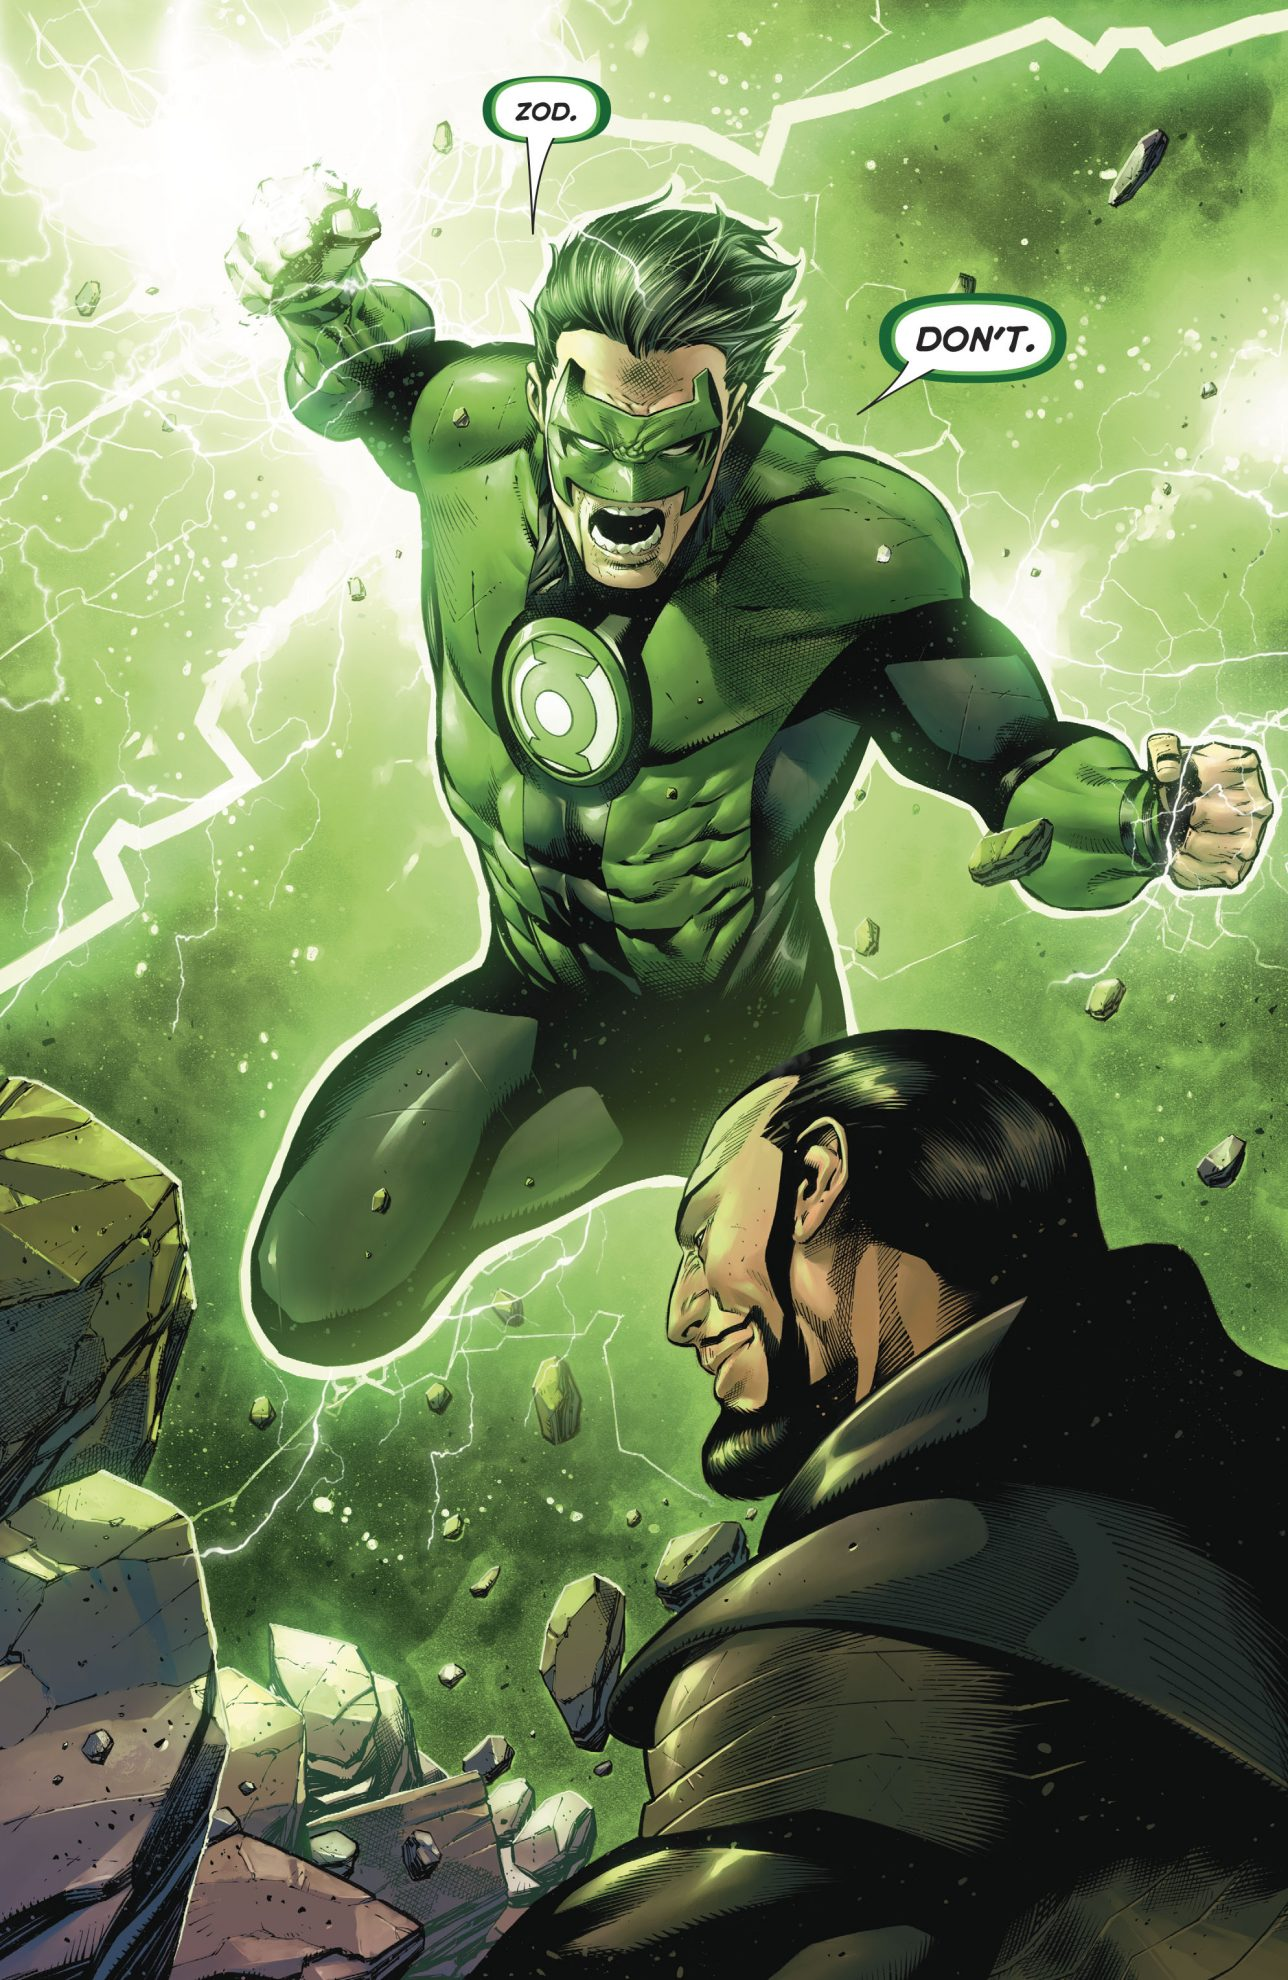 The Green Woman The Empress From The Wildwood Tarot: Green Lantern Kyle Rayner VS General Zod